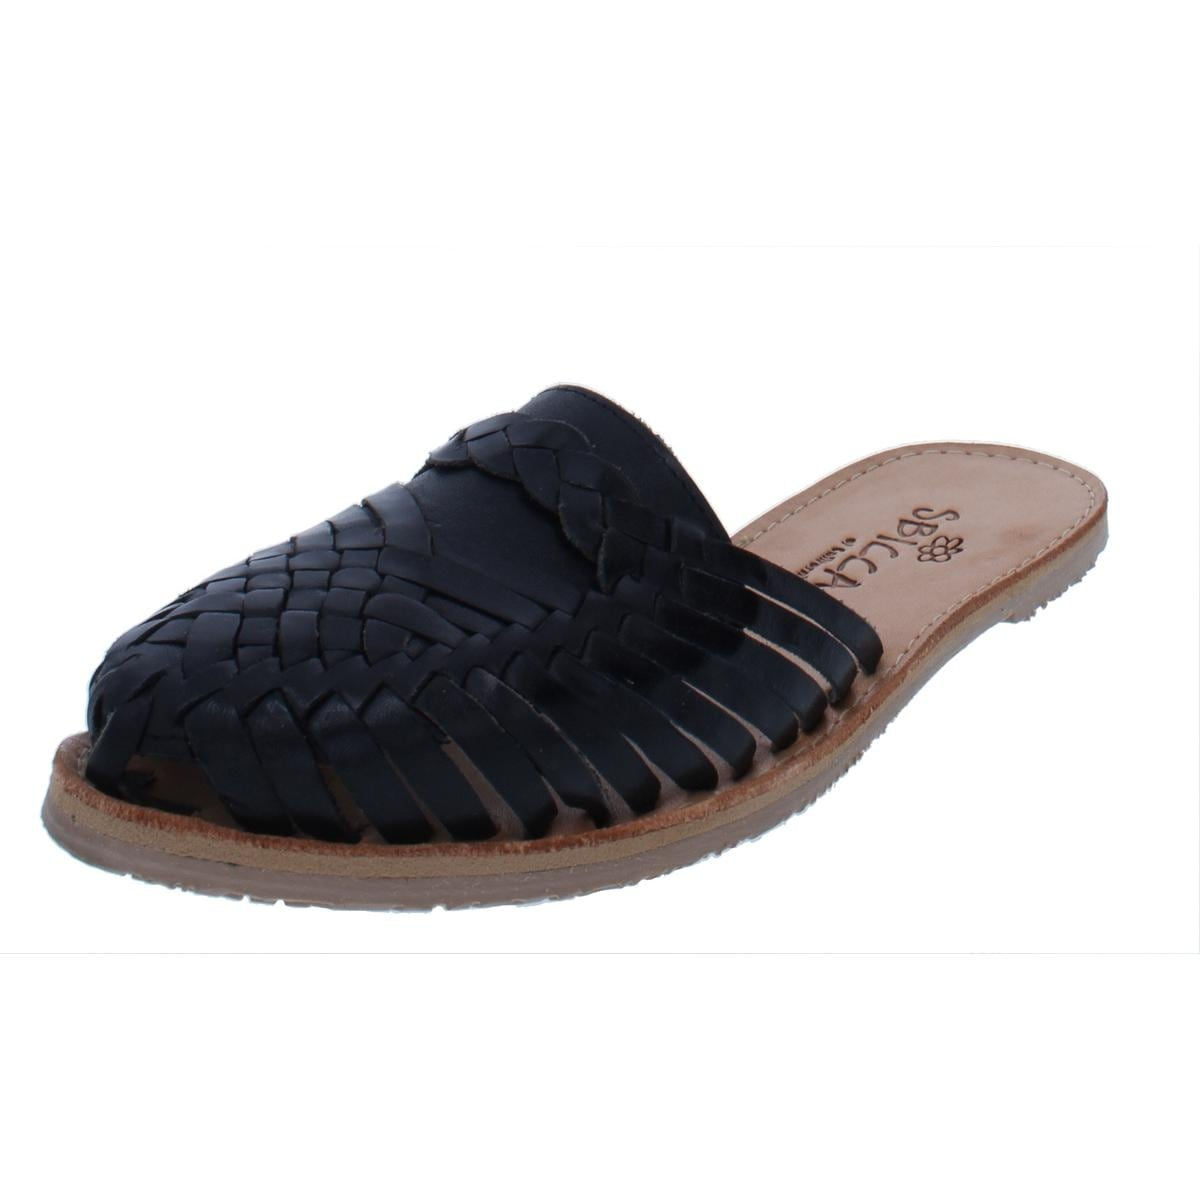 f02d2847412f Shop Sbicca Womens Baines Huarache Sandals Closed Toe Vintage - Free  Shipping On Orders Over  45 - Overstock - 21058340